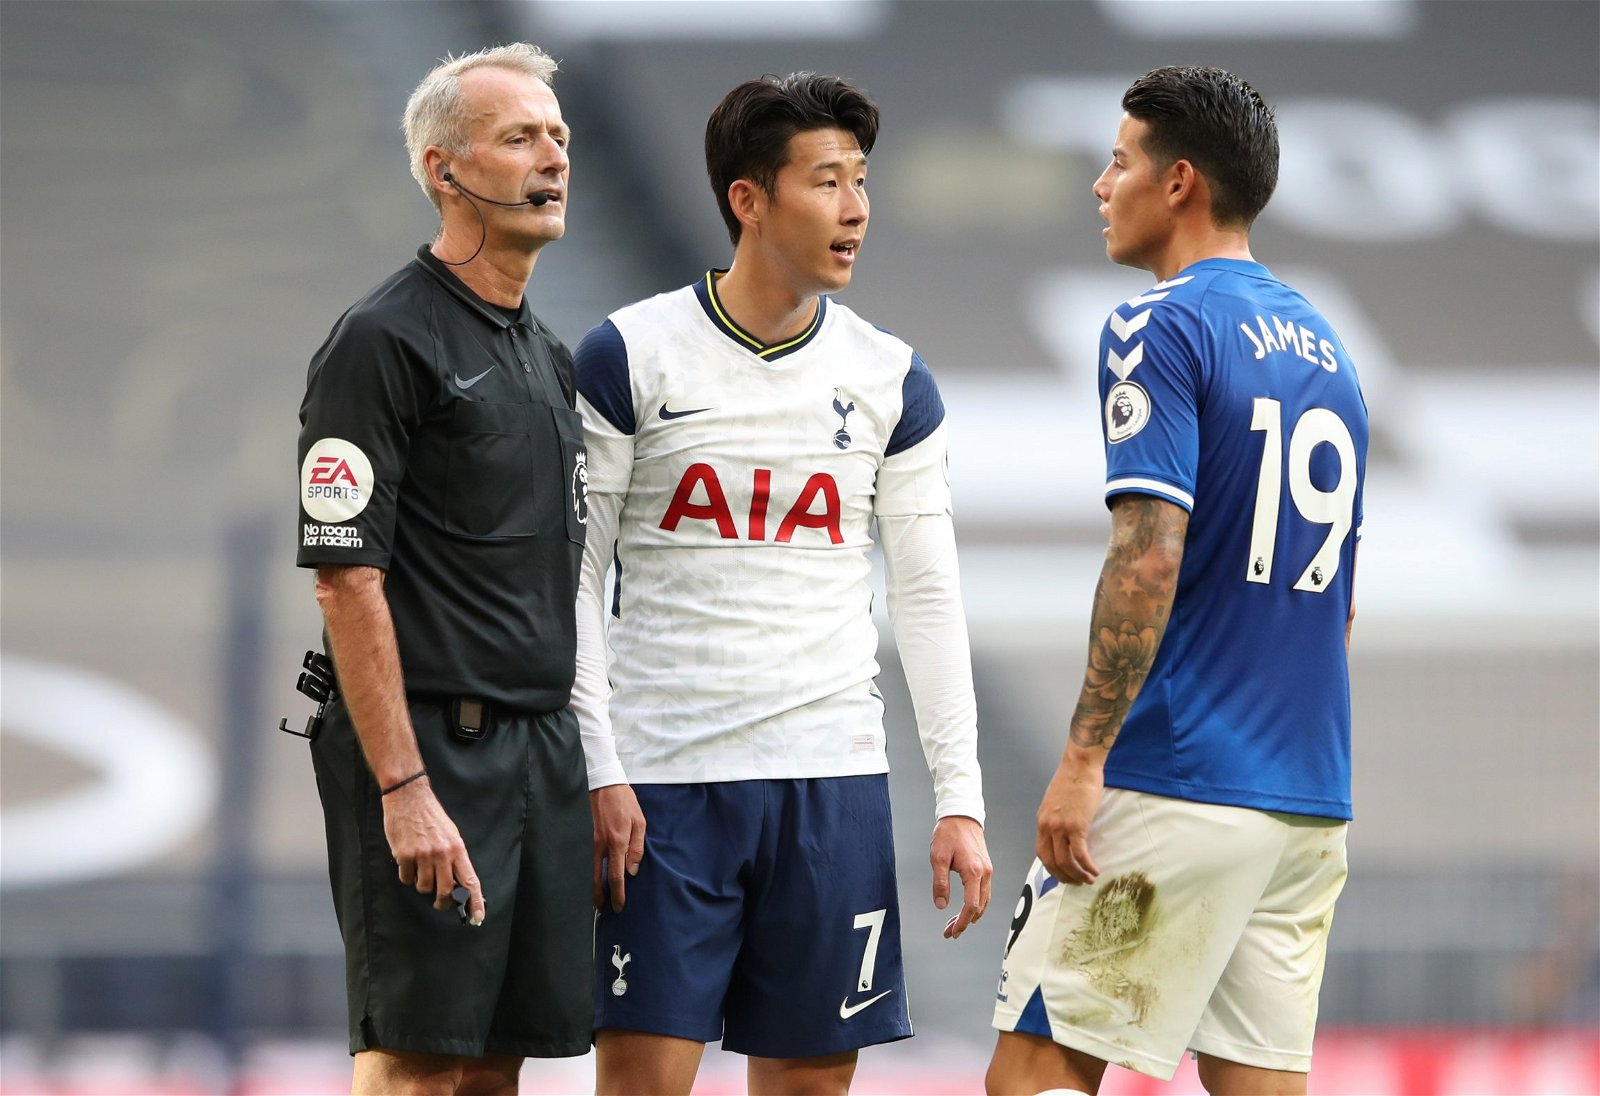 james-rodriguez-and-heung-min-son-opening-day-premier-league